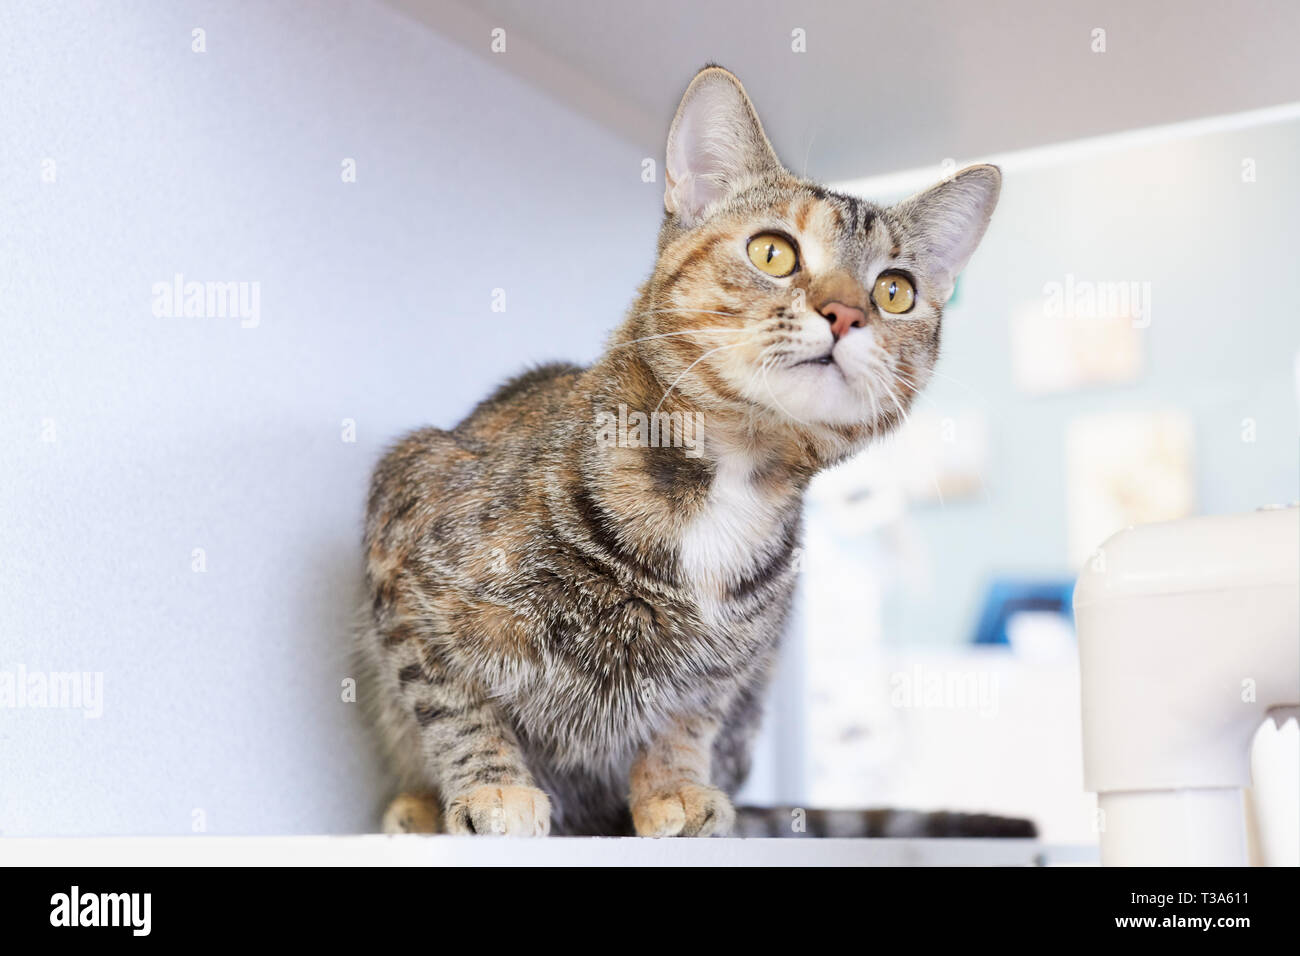 A curious and playful young brown tabby cat is sitting on a shelf by a window and looking up Stock Photo